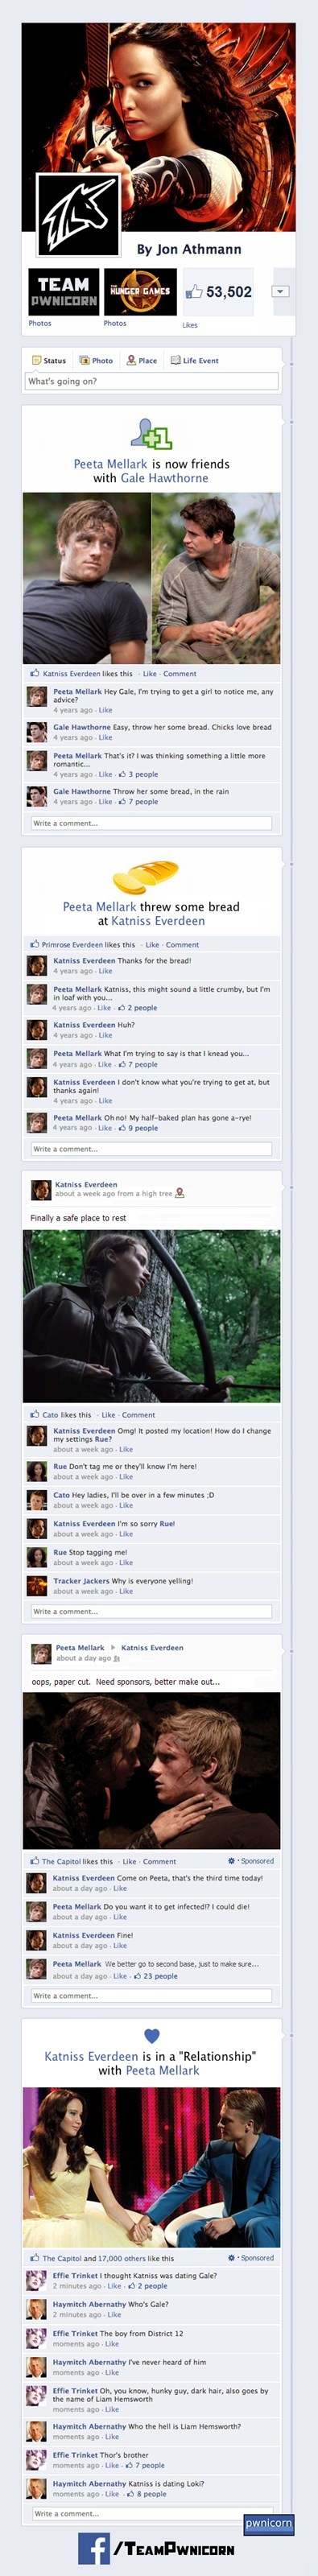 jennifer lawrence,liam hemsworth,catching fire,hunger games on facebook,hunger games,katniss everdeen,josh,failbook,hutcherson